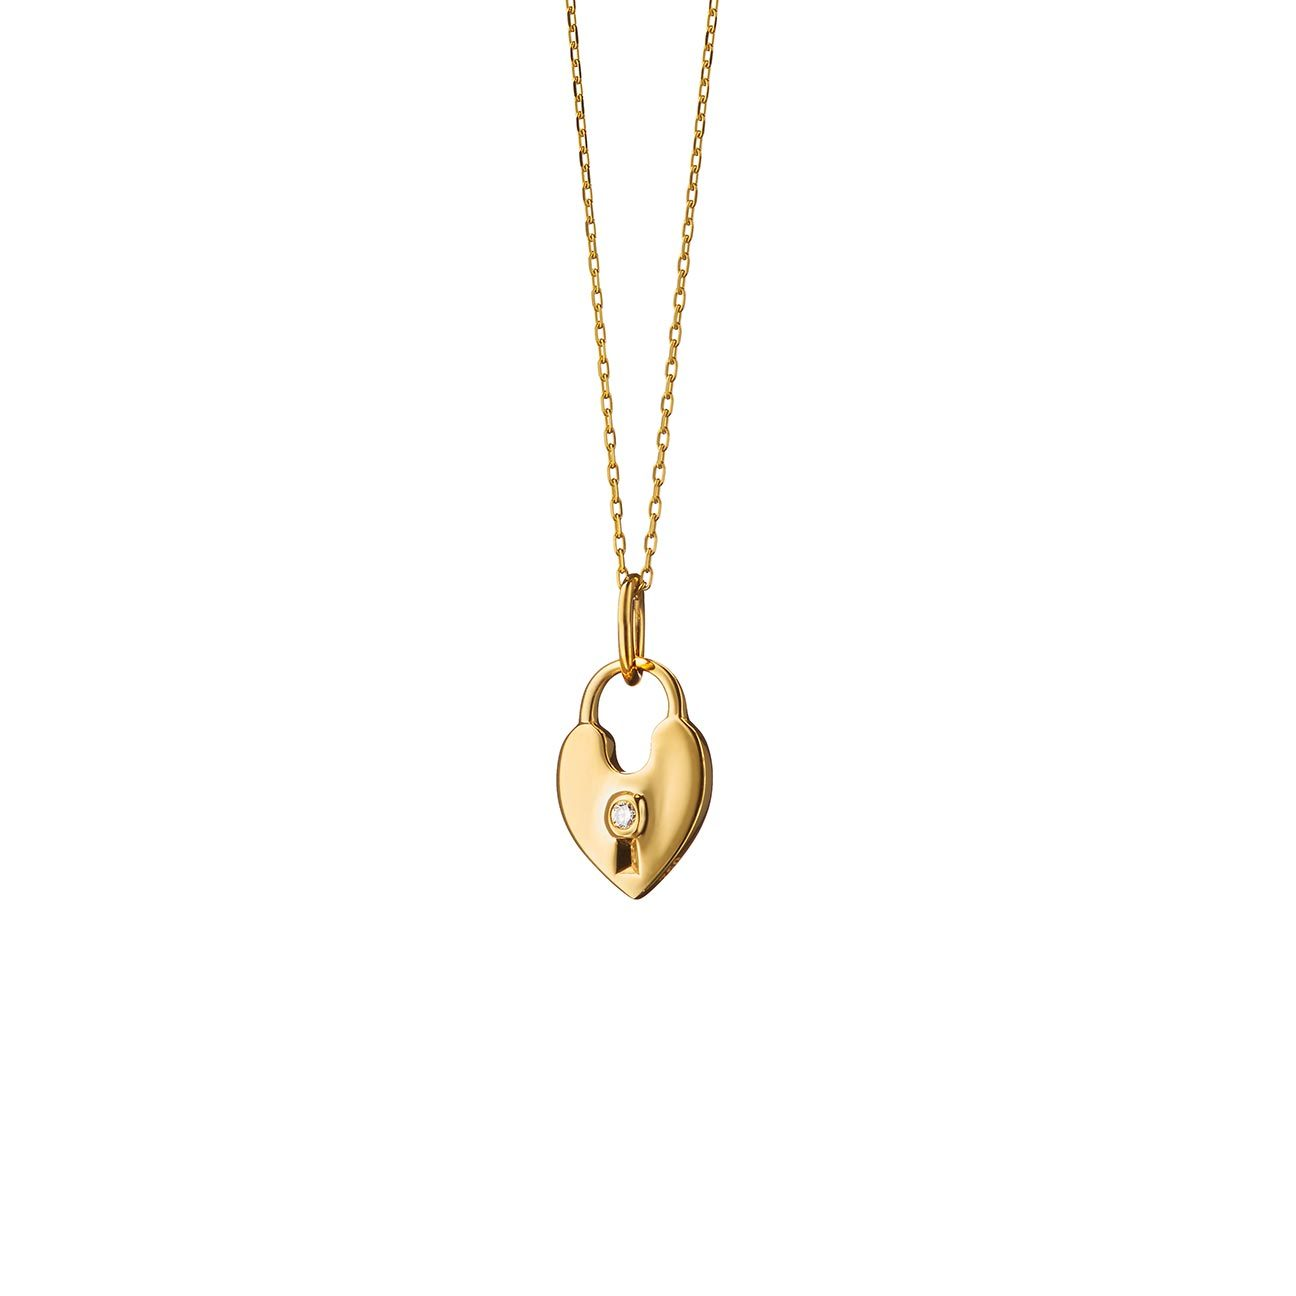 Heart Shaped Lock Charm Necklace